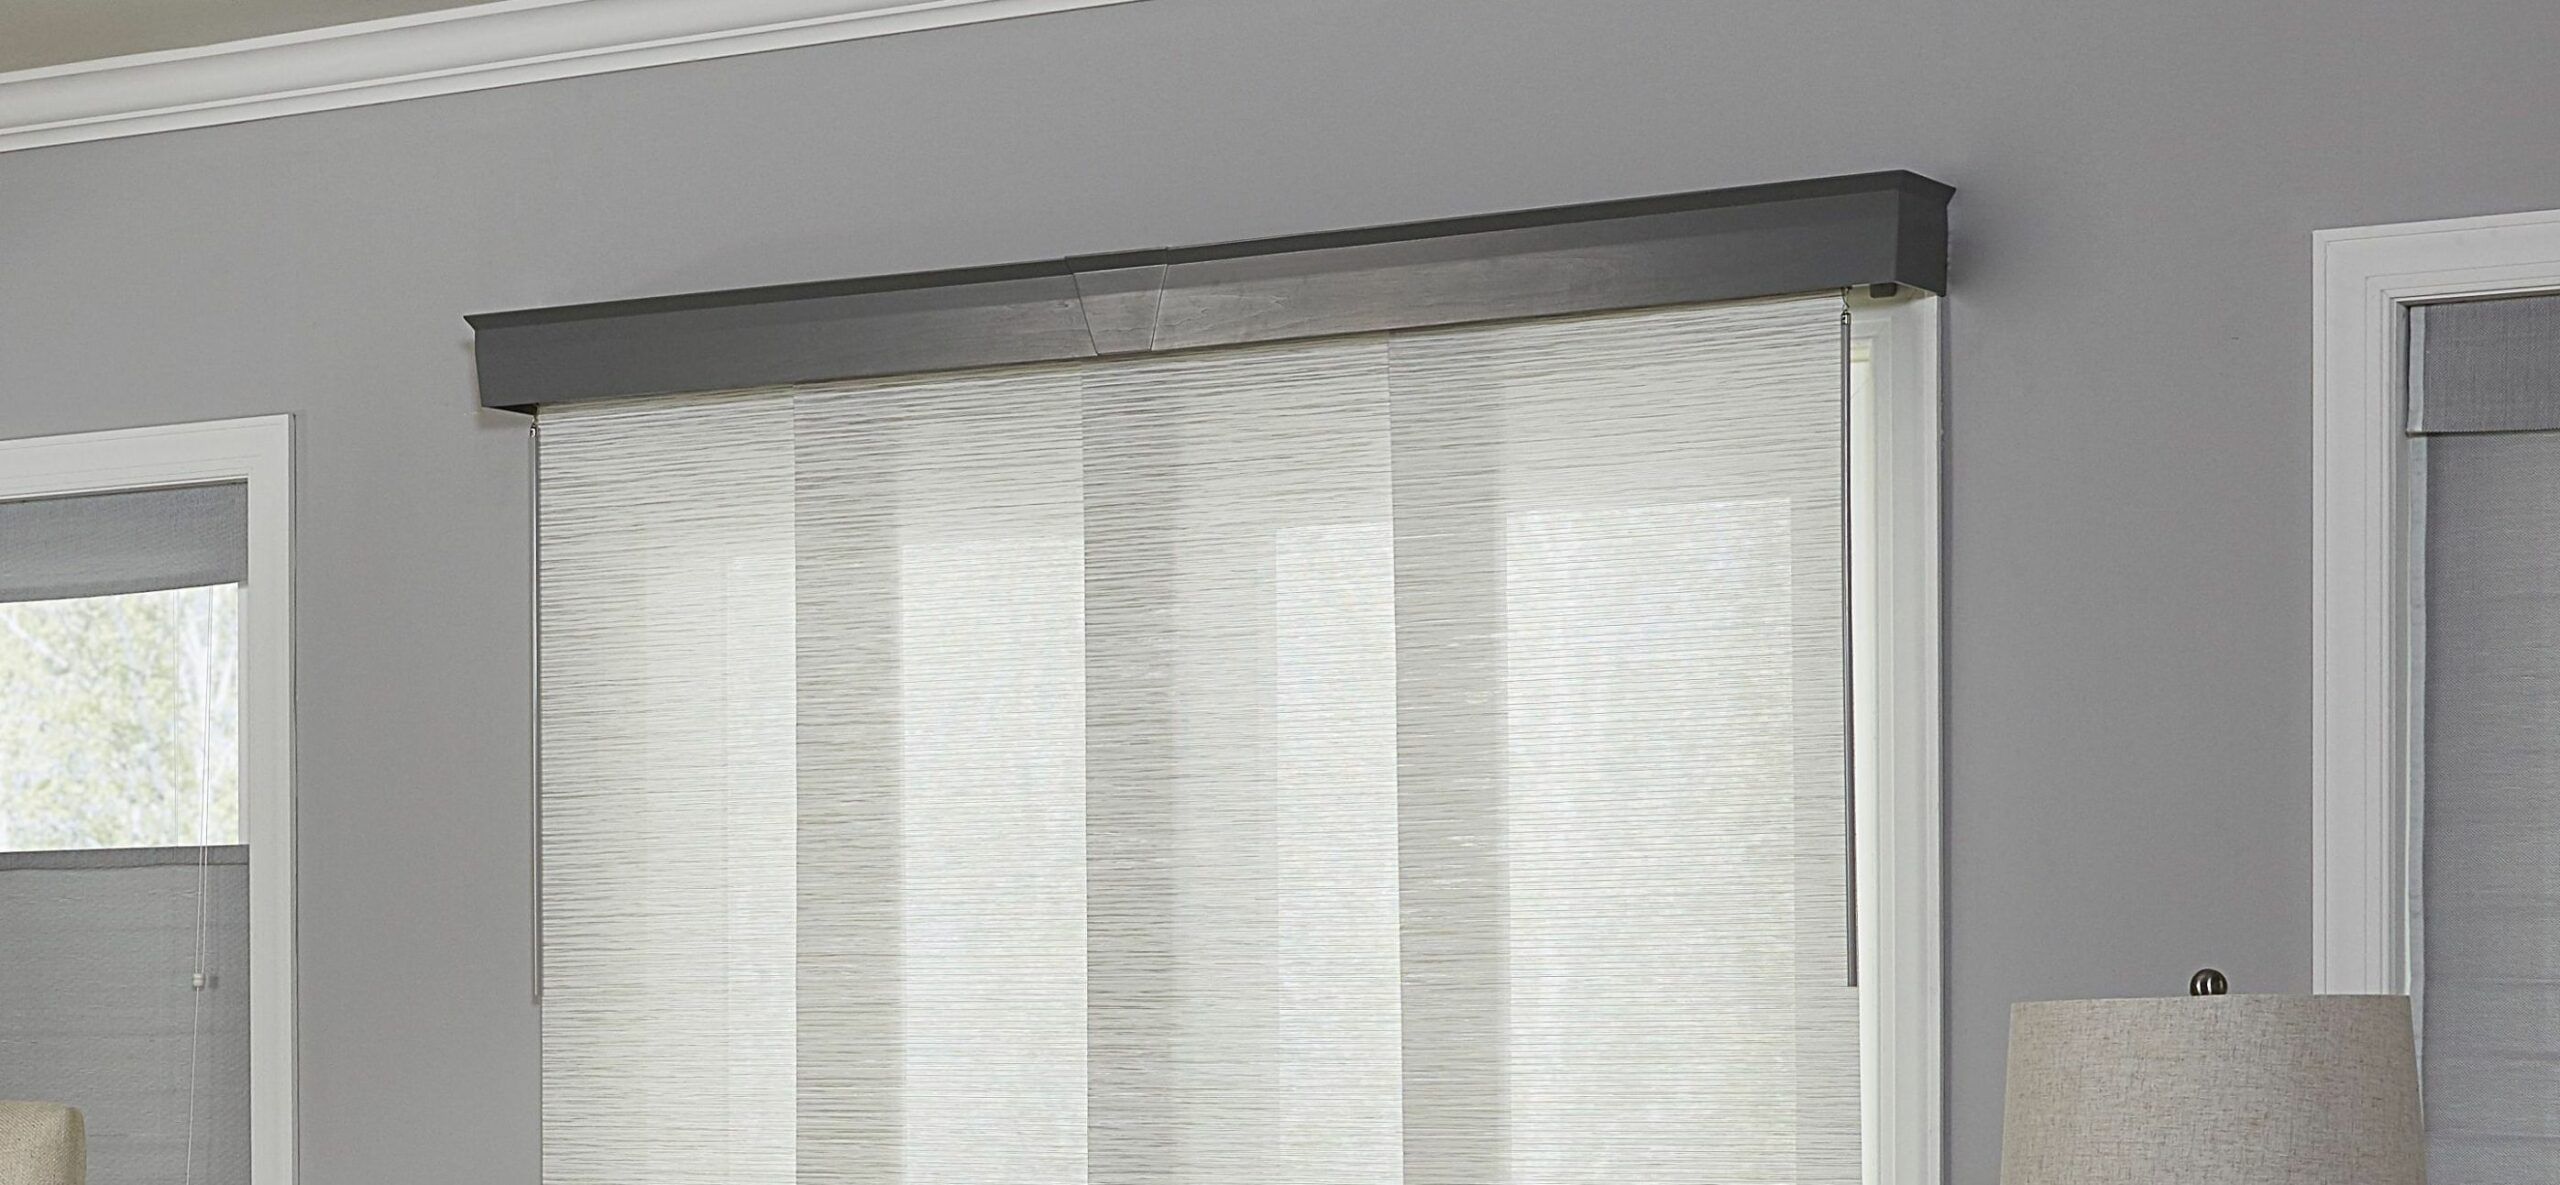 Drapes Blackout Outdoor Images For Curtains Coverings Treatments ..